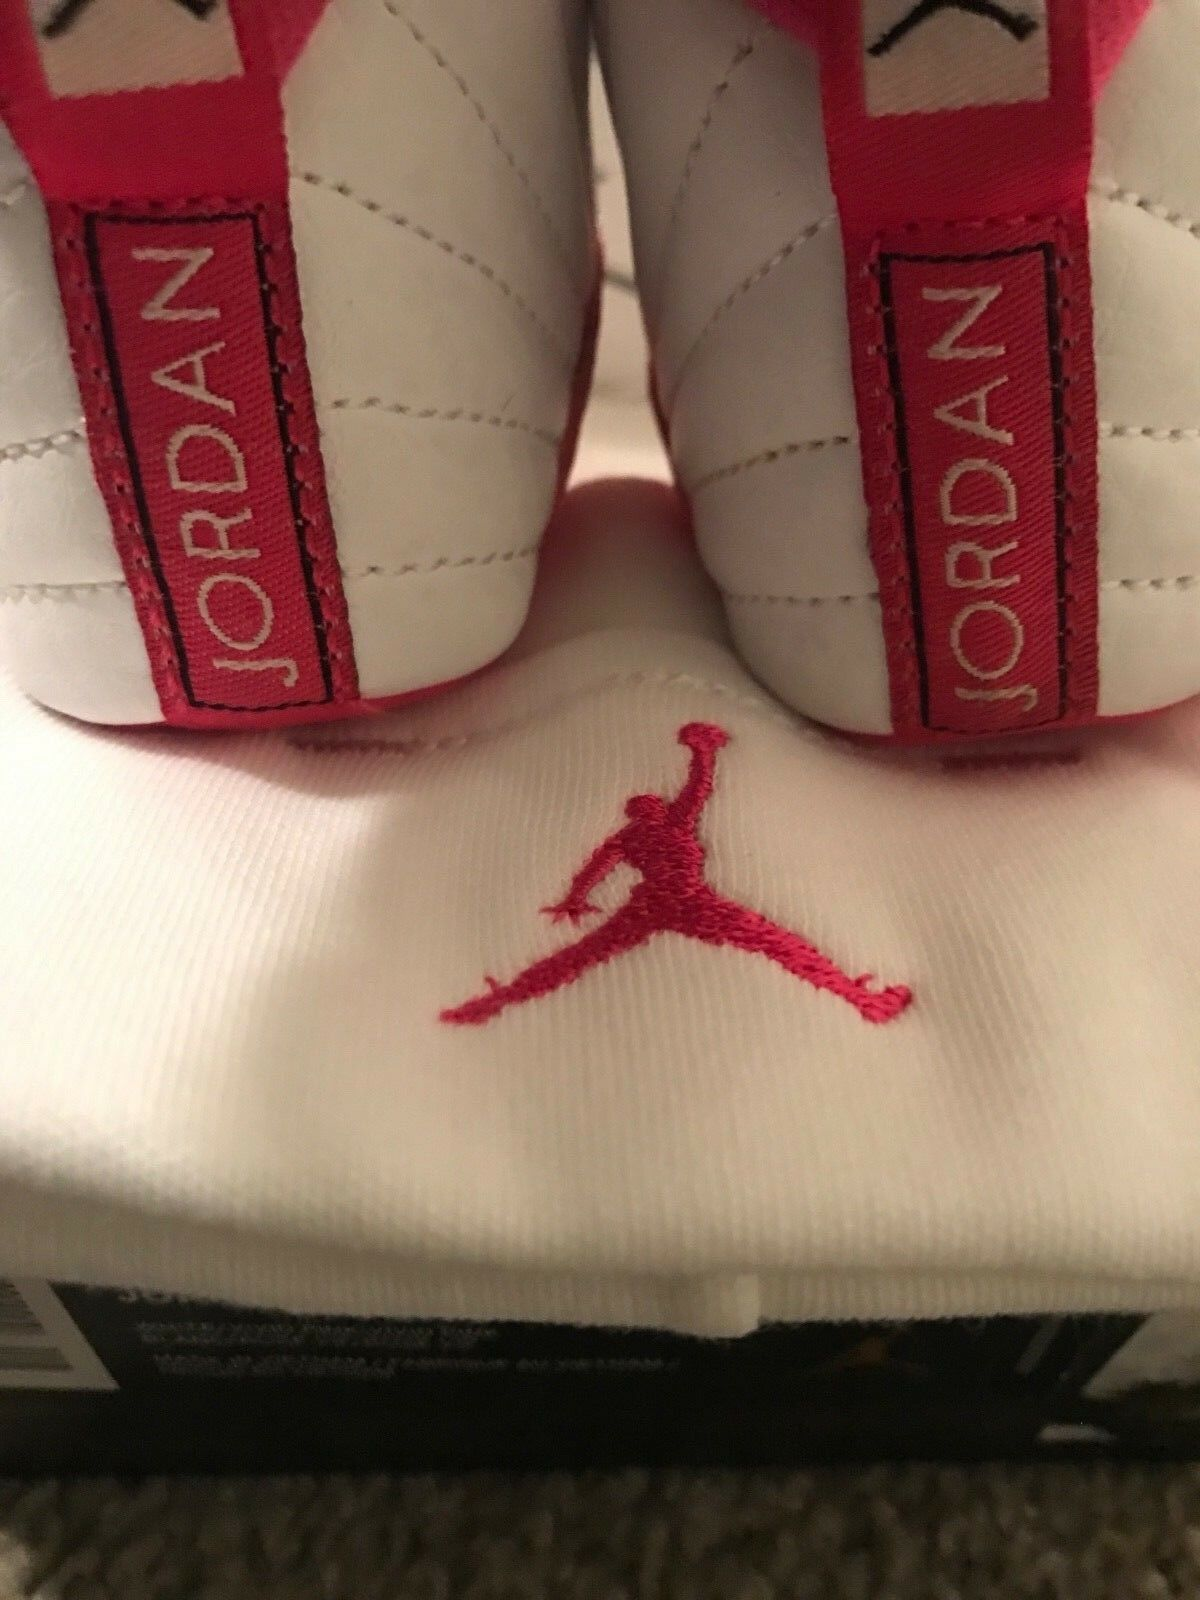 Tennis shoes Baby Jordan's pink and white. Size1c with with with a baby hat. Free Shipping 6e44cc